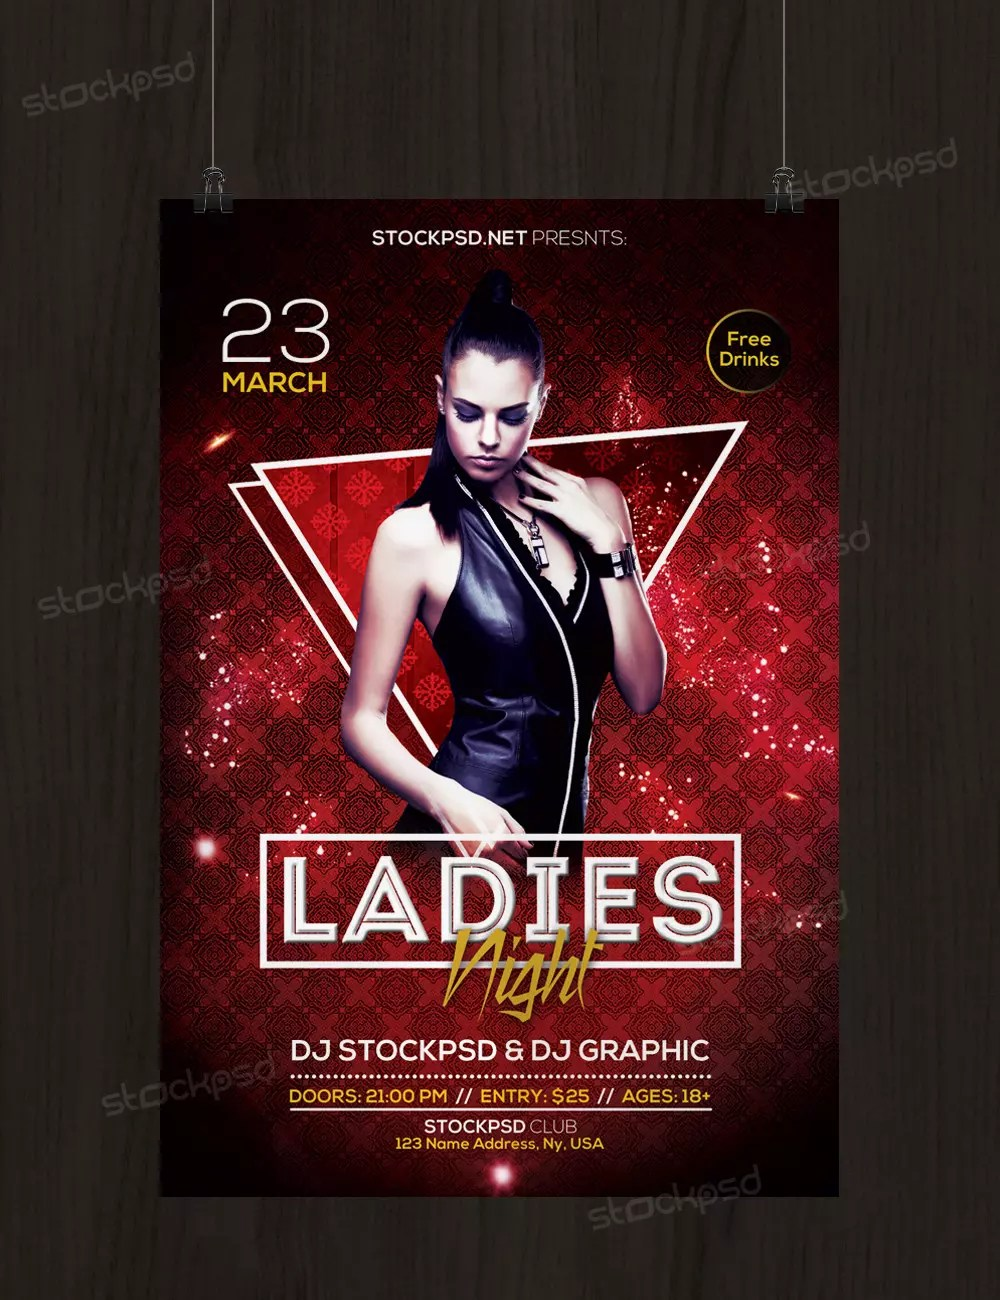 Ladies Night 2017 - Download Free PSD Flyer Template